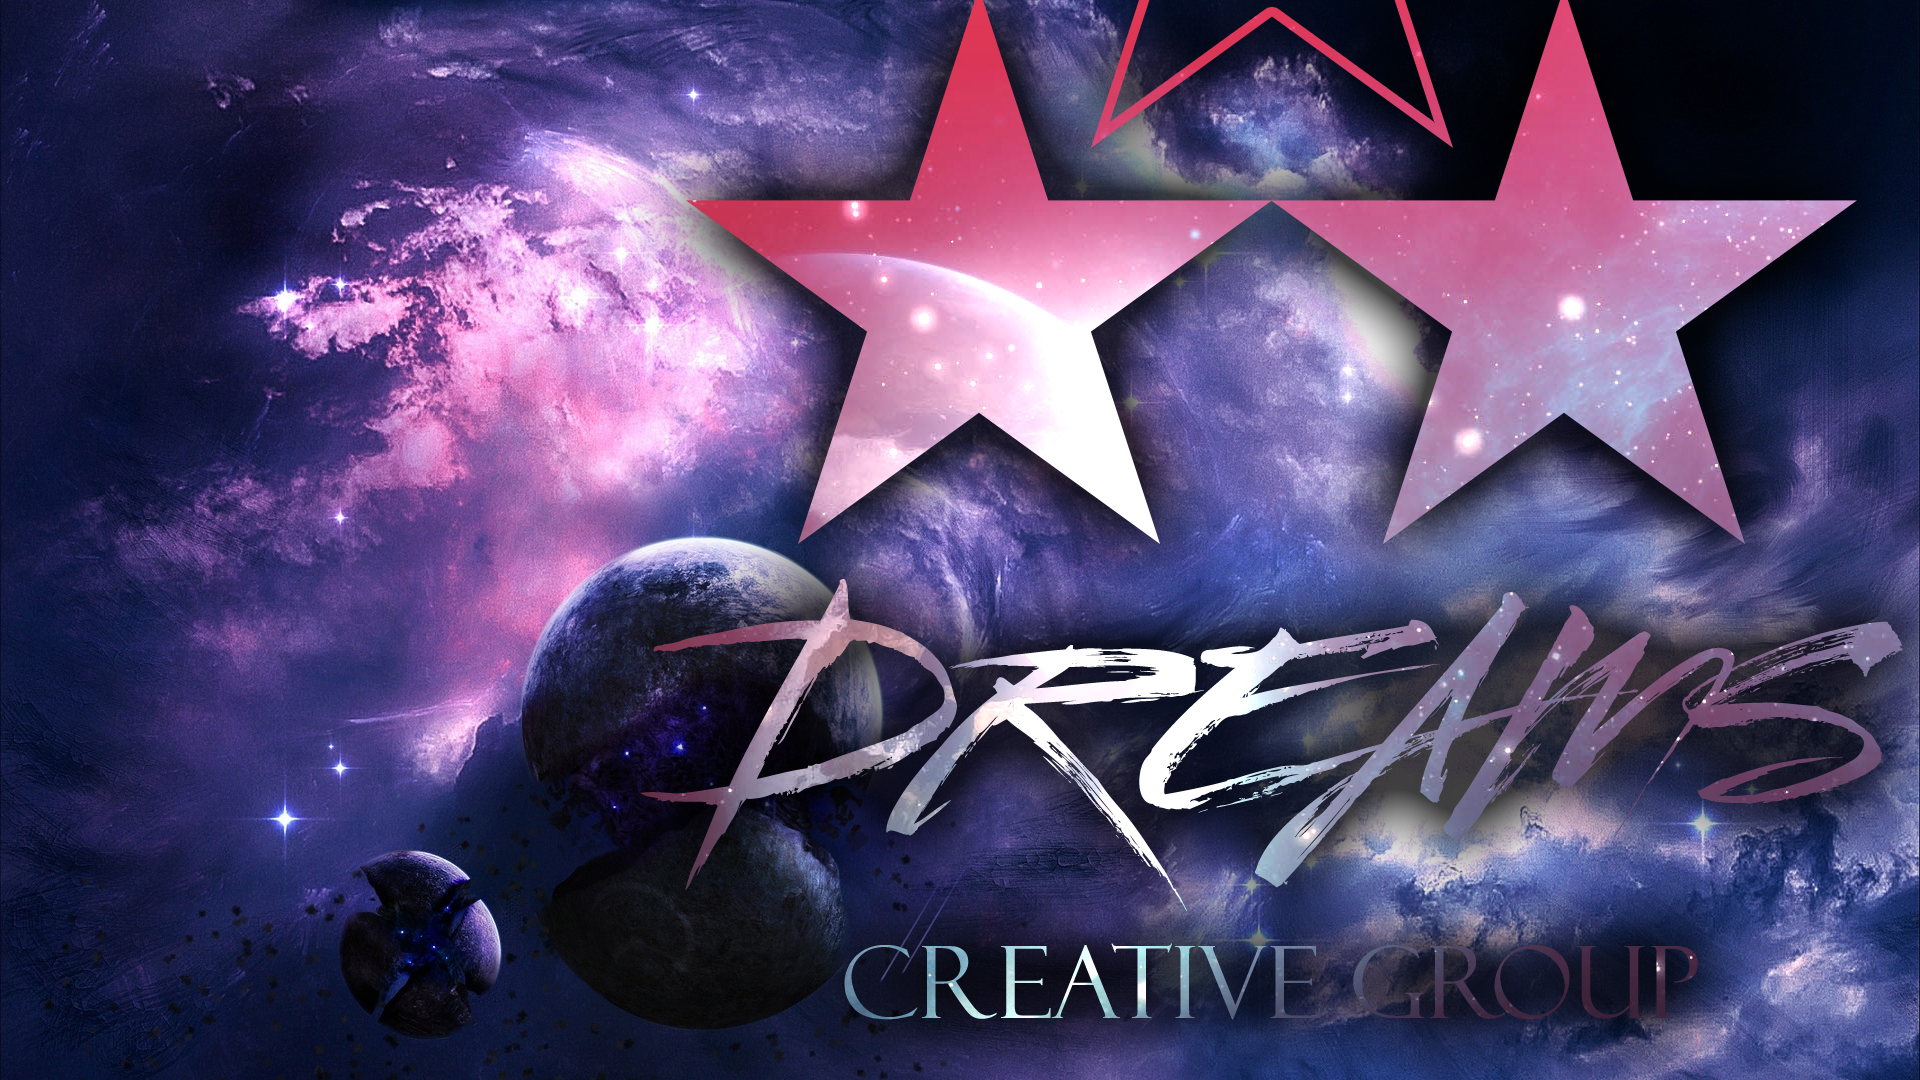 Dreams Creative Group